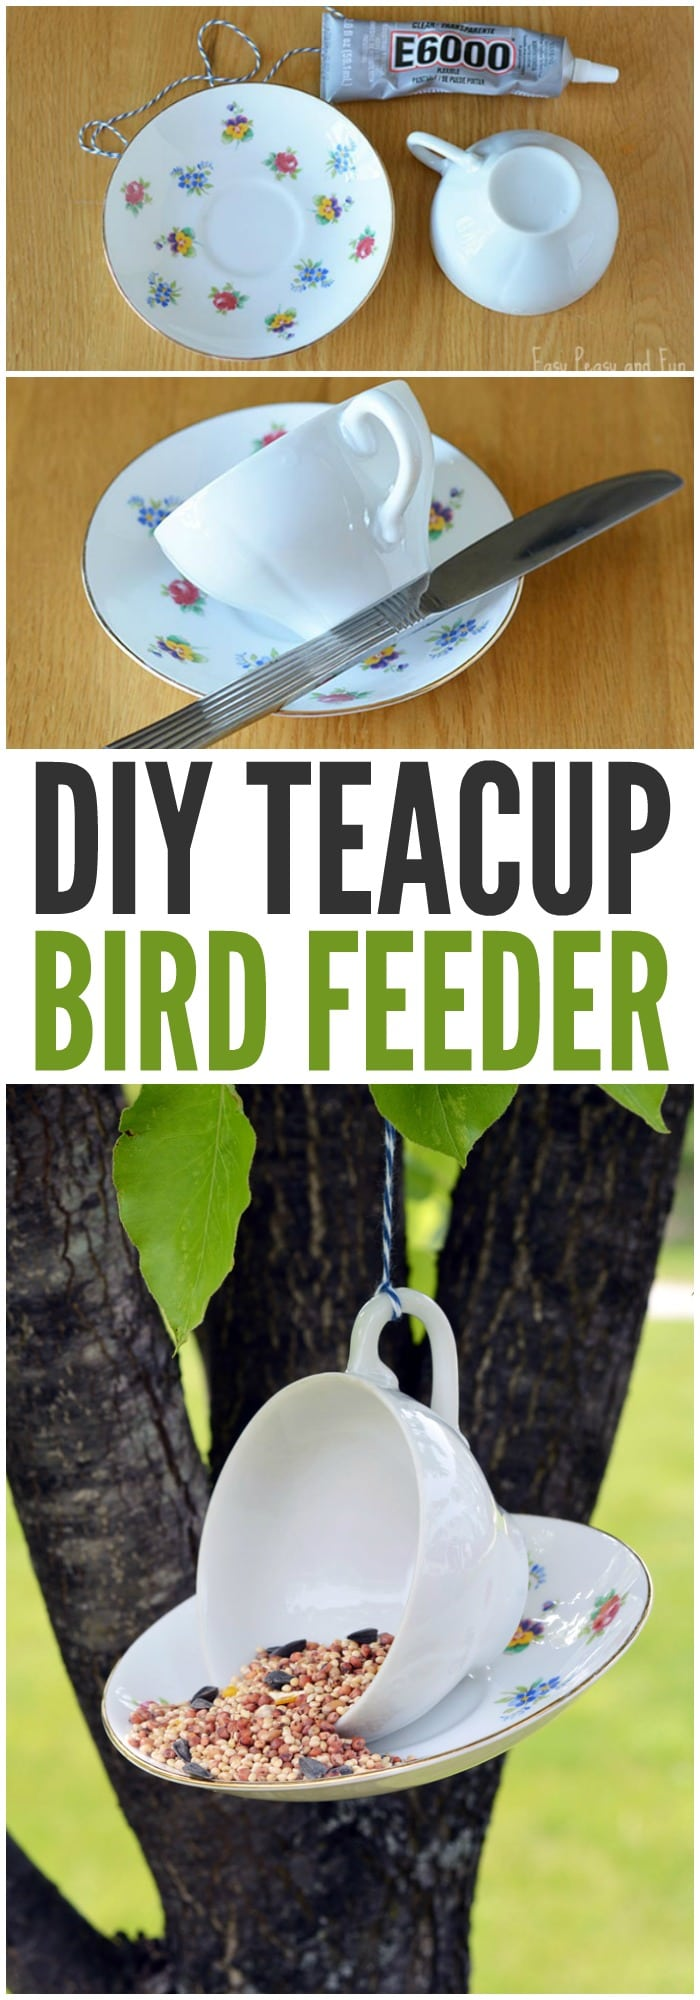 Simple DIY Teacup Bird Feeder Craft